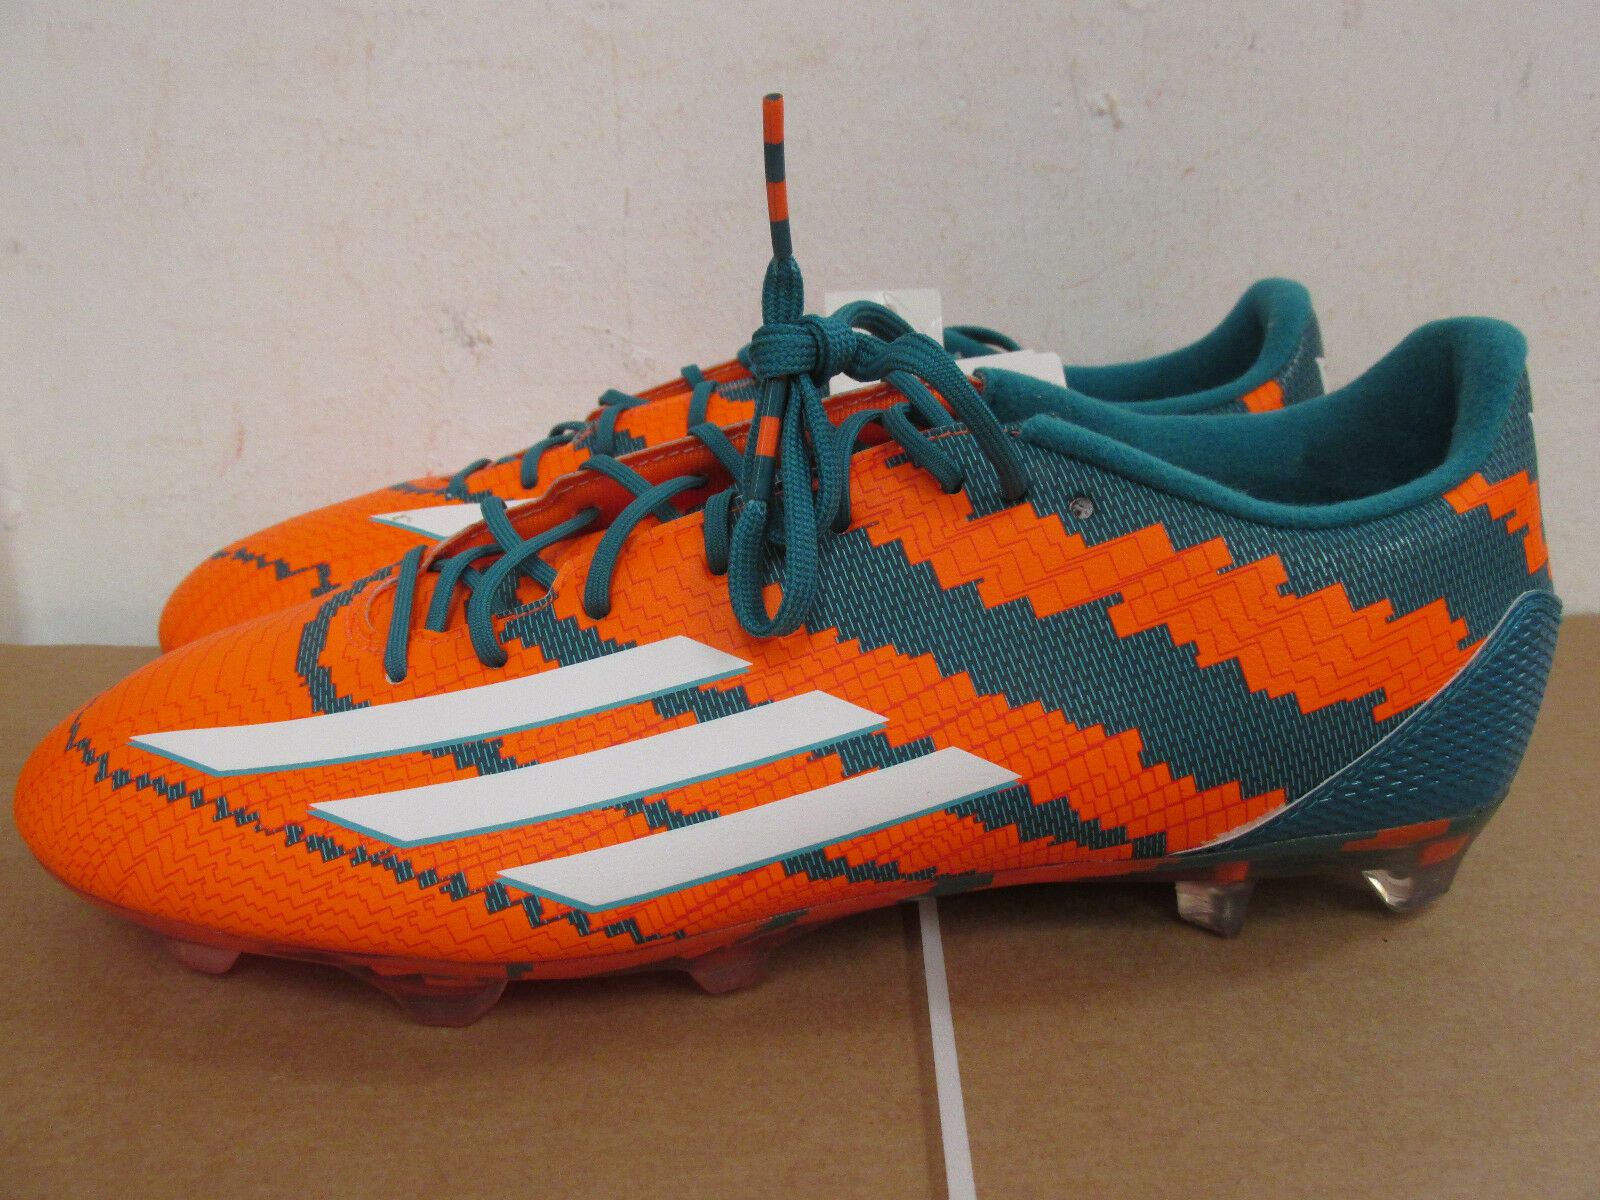 Adidas Messi 10.2 FG M29364 Mens Football Boots Cleats SAMPLE